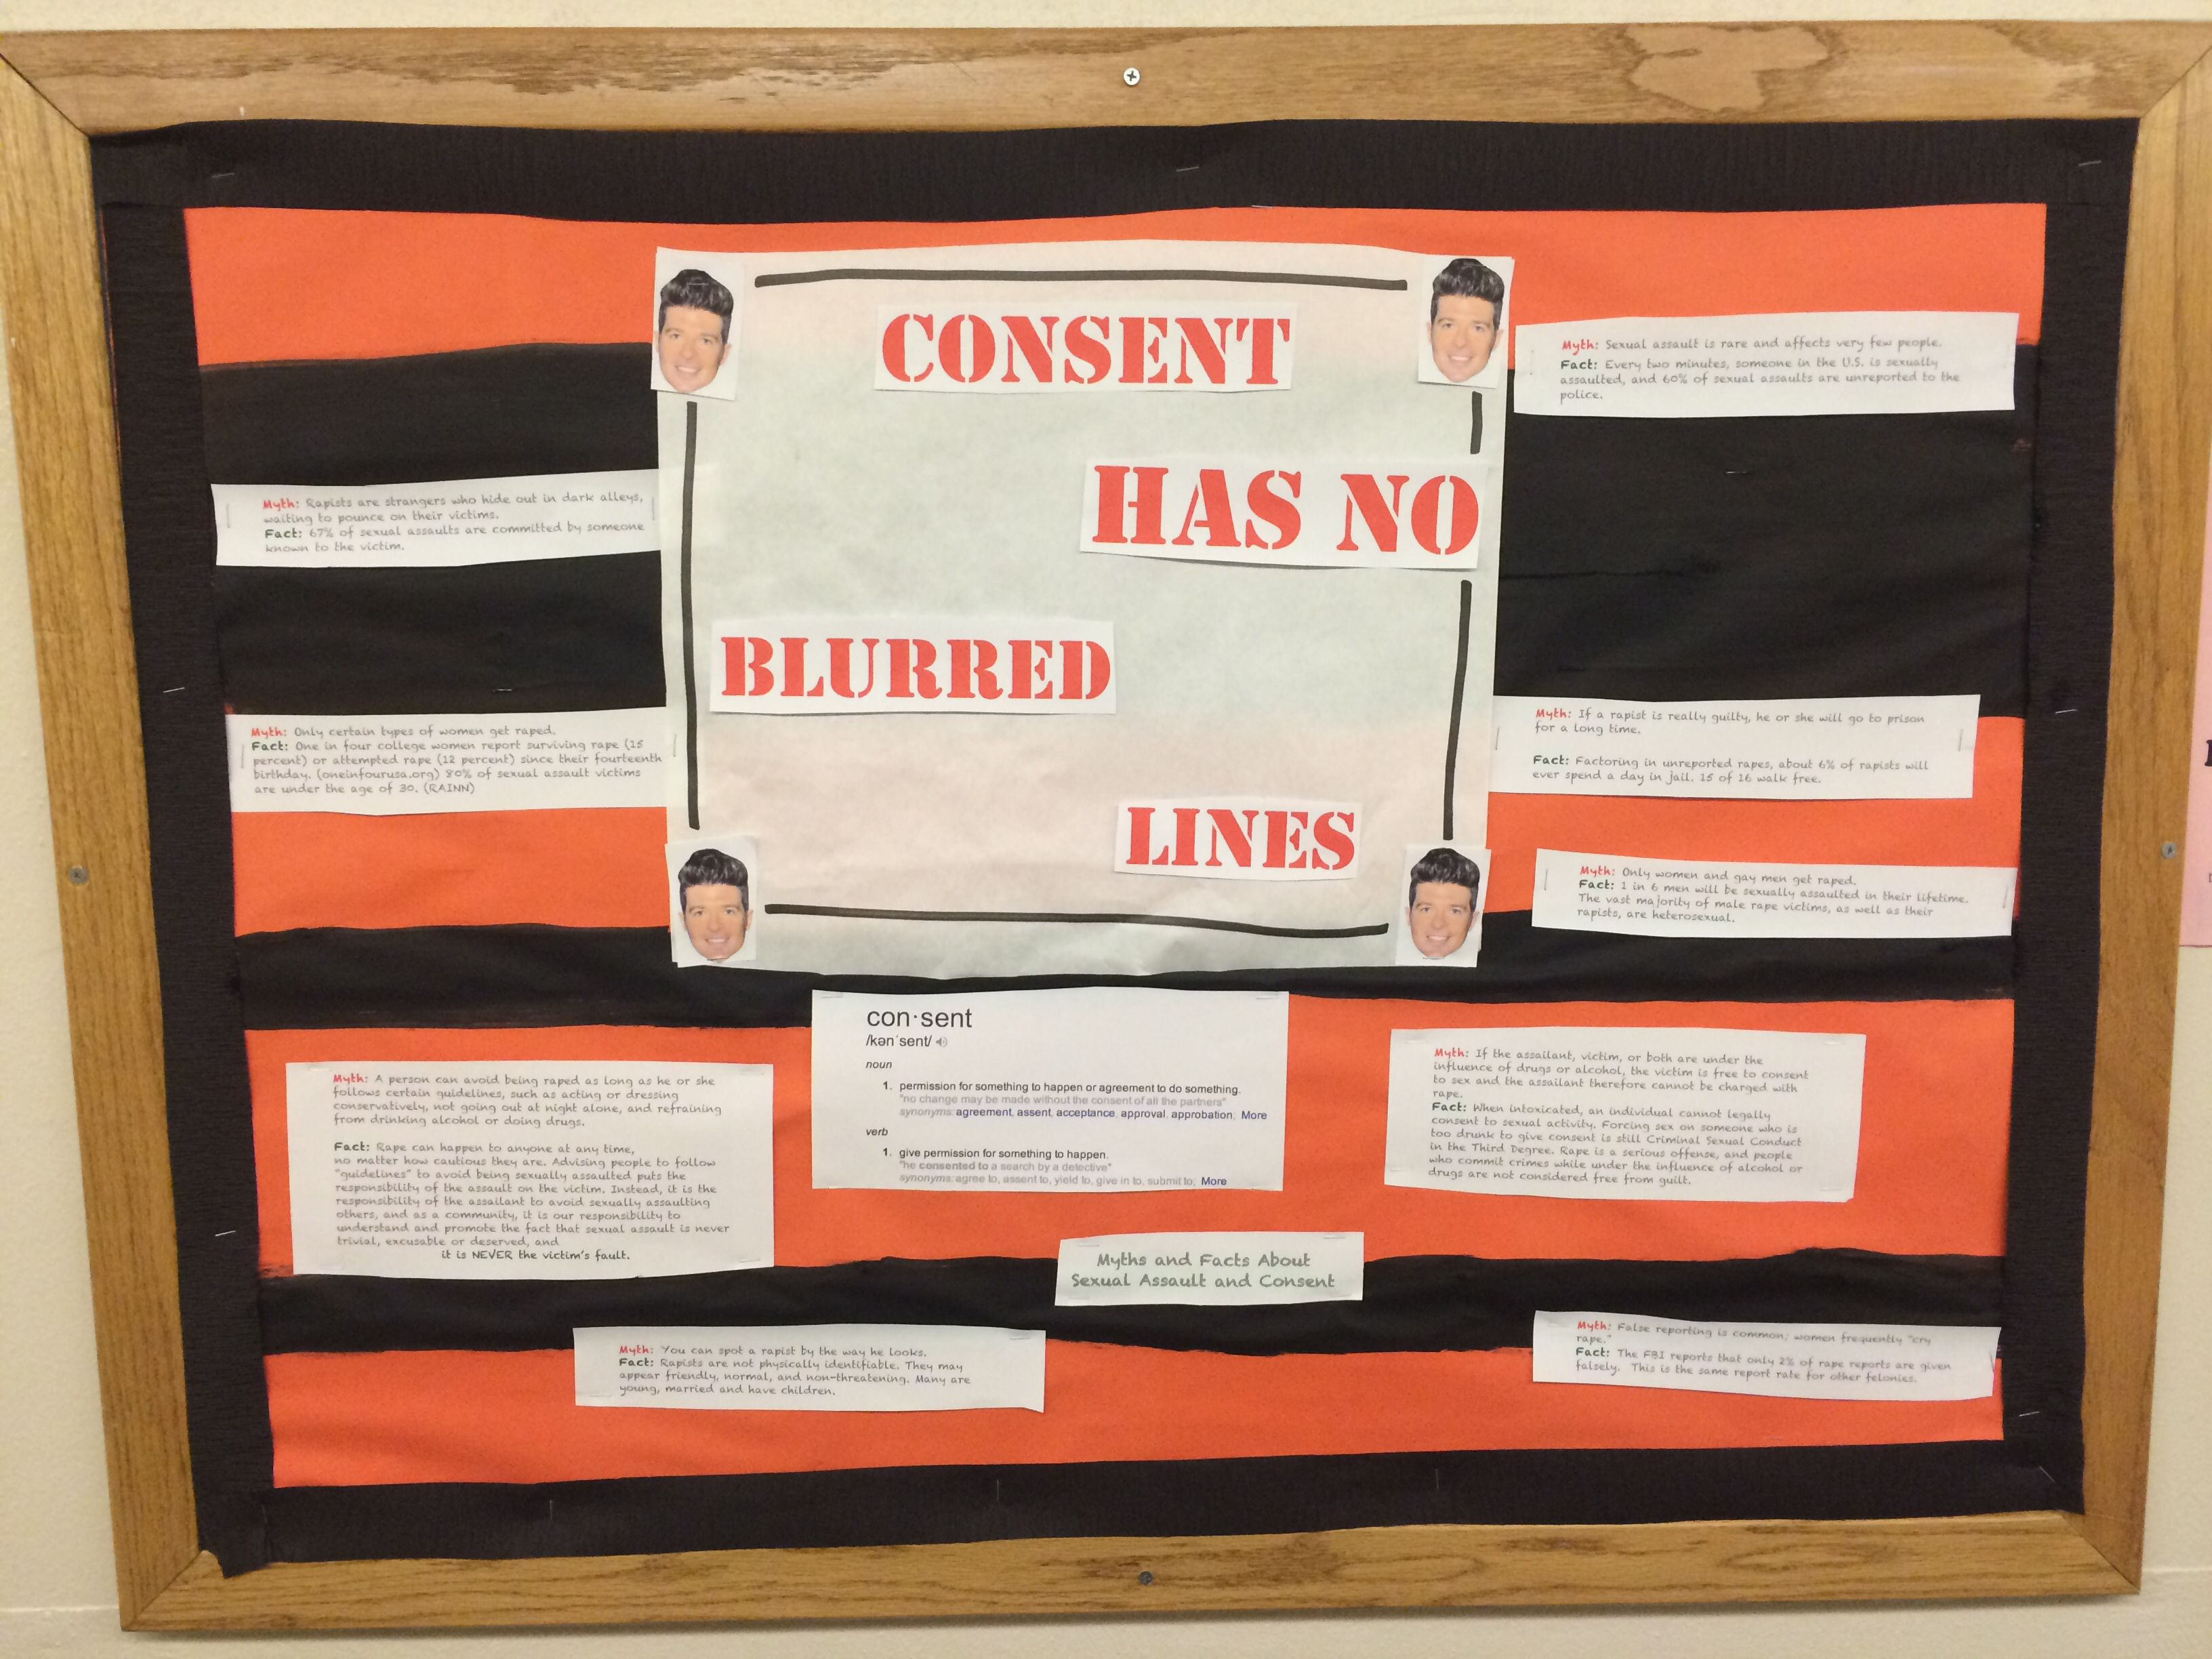 Consent has no blurred lines. A bulletin board about sexual assault and  consent myths and